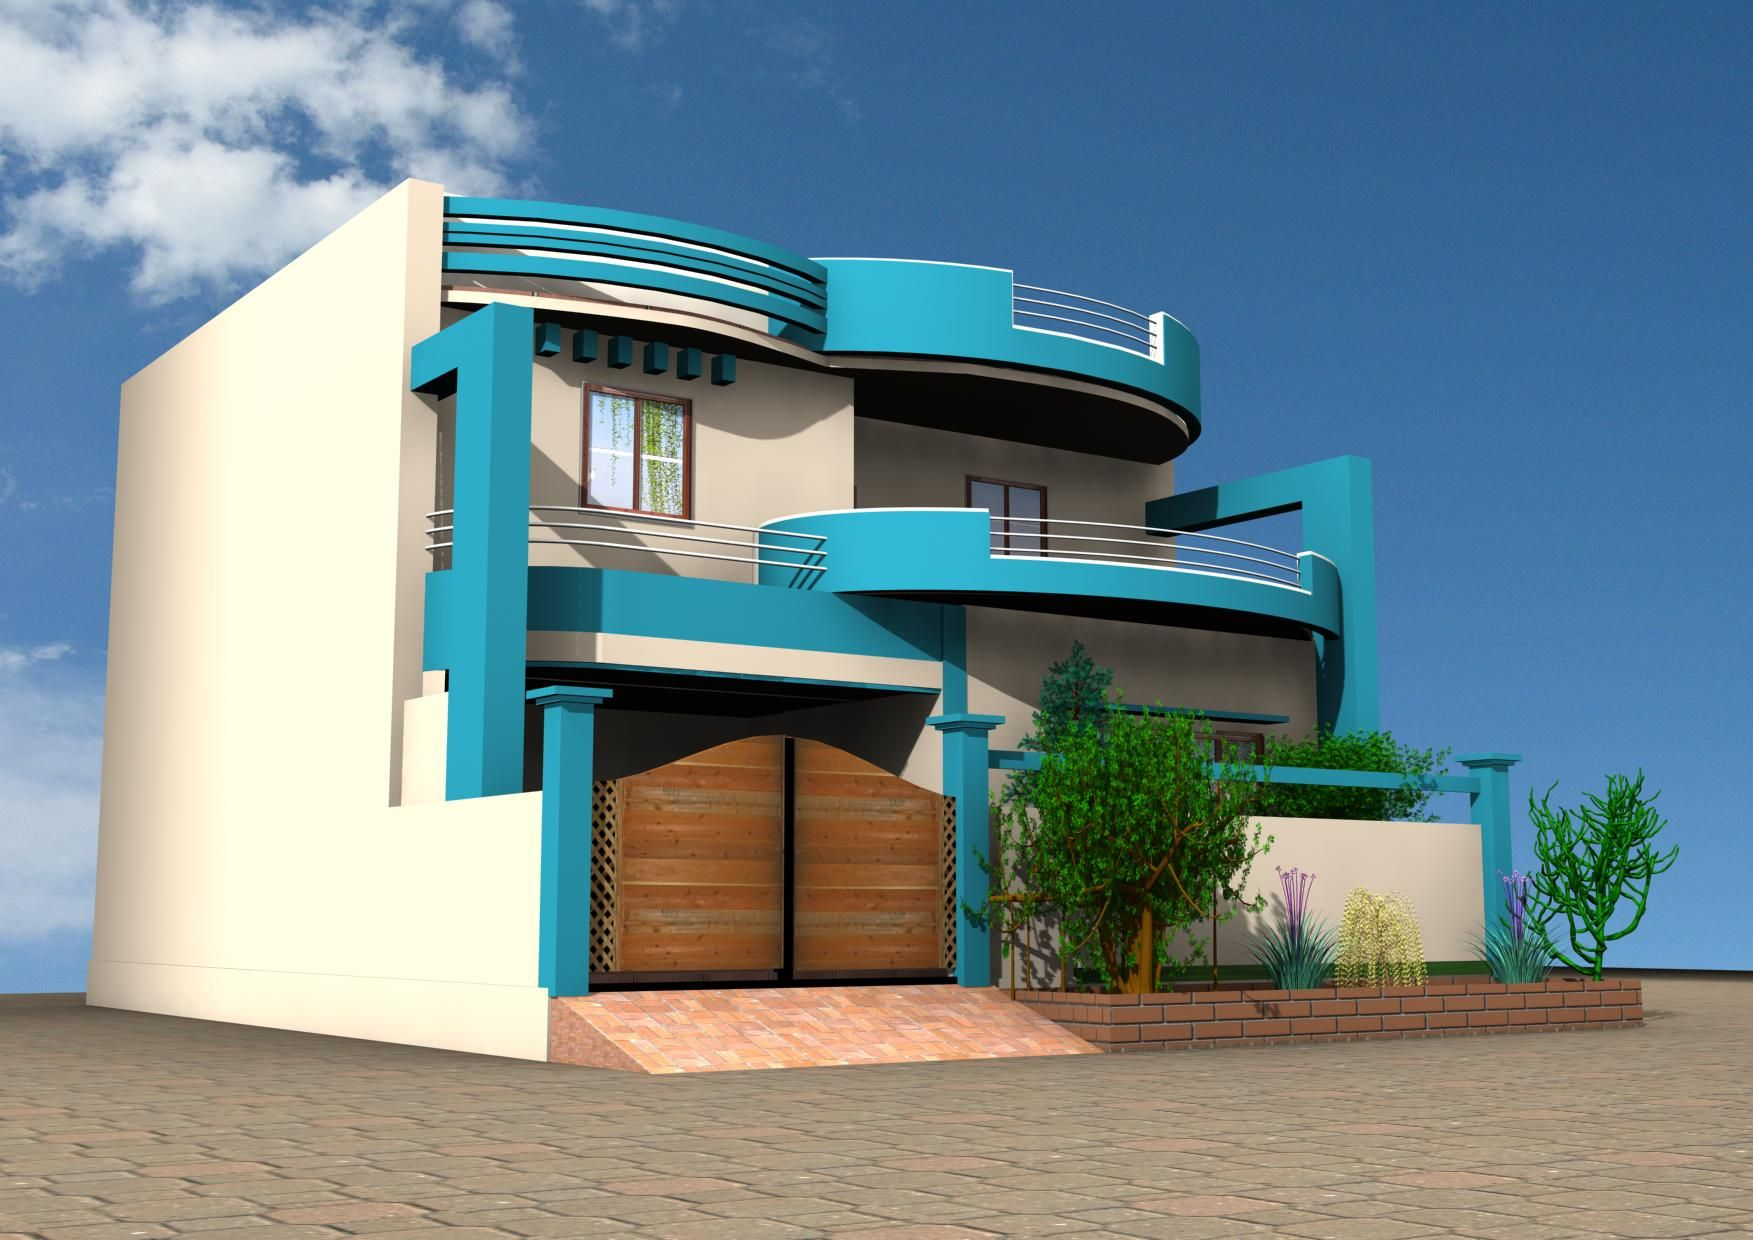 3d home design images hd 1080p for 3d house design free